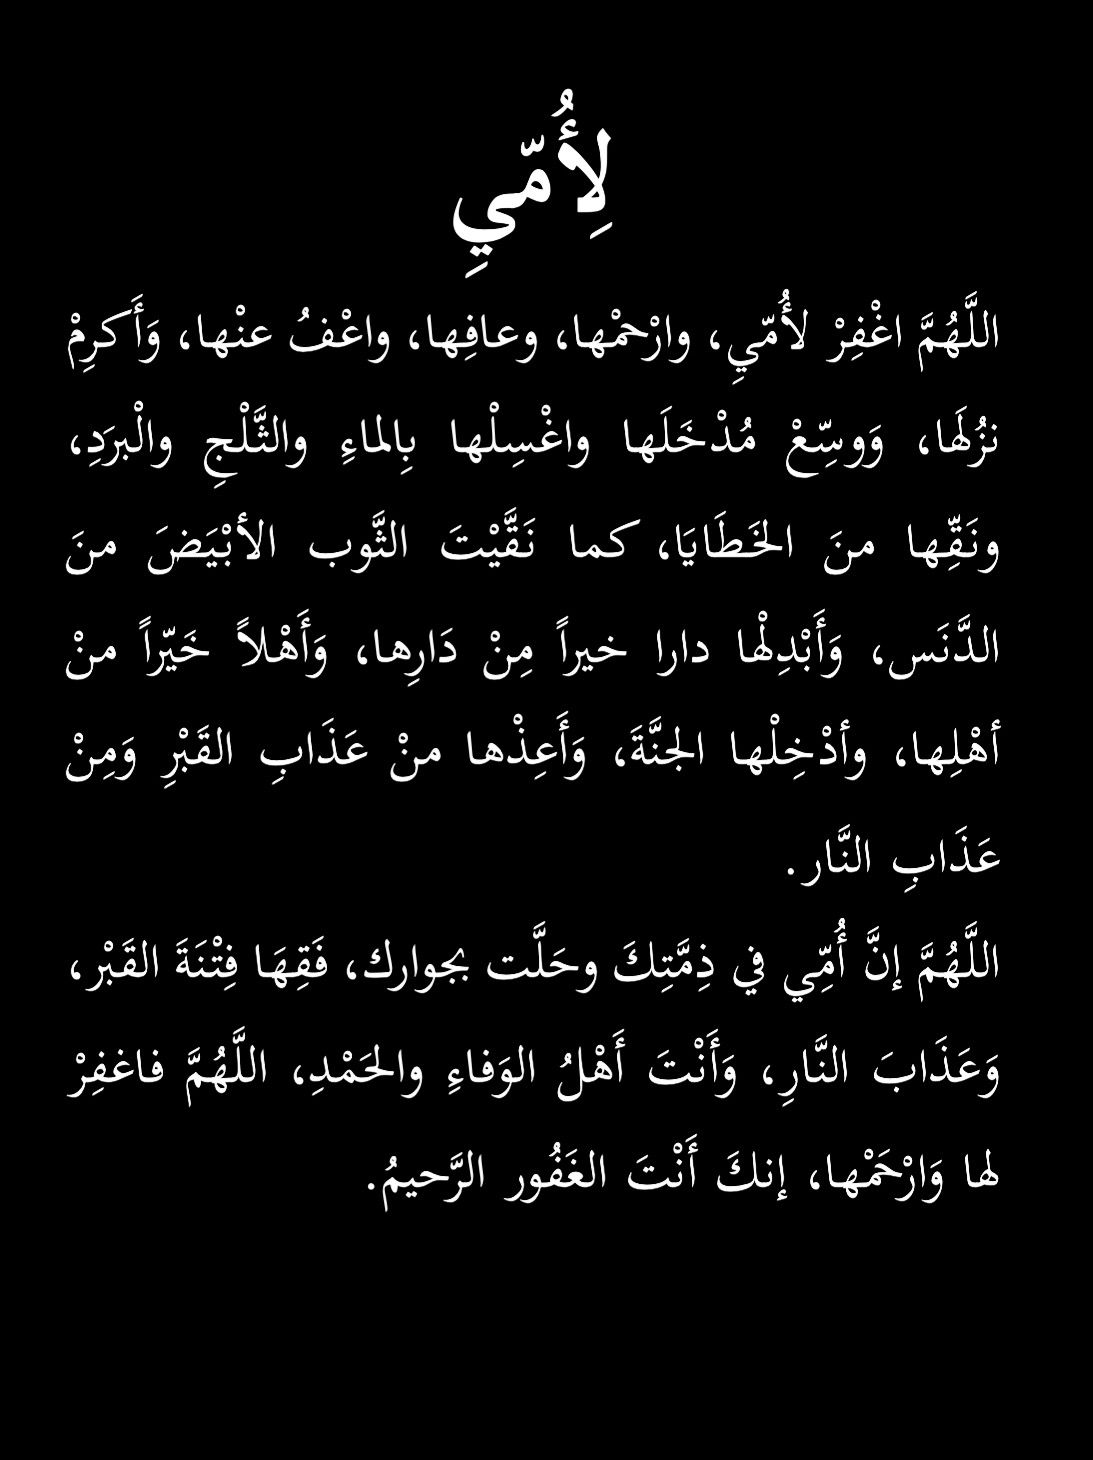 Pin By Umaima On فقيدة قلبي Inspirational Quotes About Success Islamic Love Quotes Love U Mom